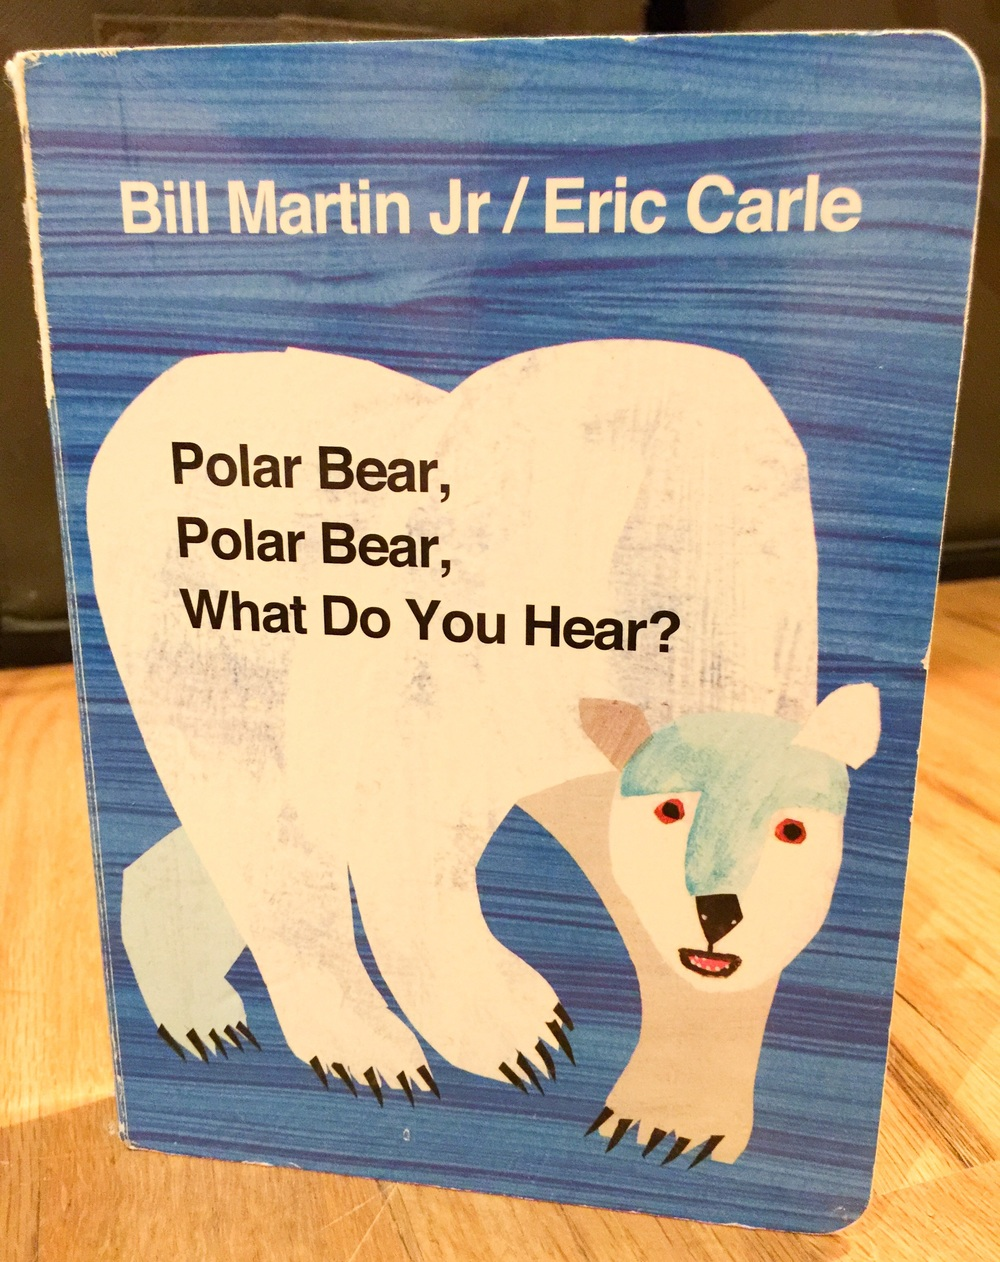 Polar Bear, Polar Bear, What Do You Hear?  By Bill Martin Jr  | Eric Carle